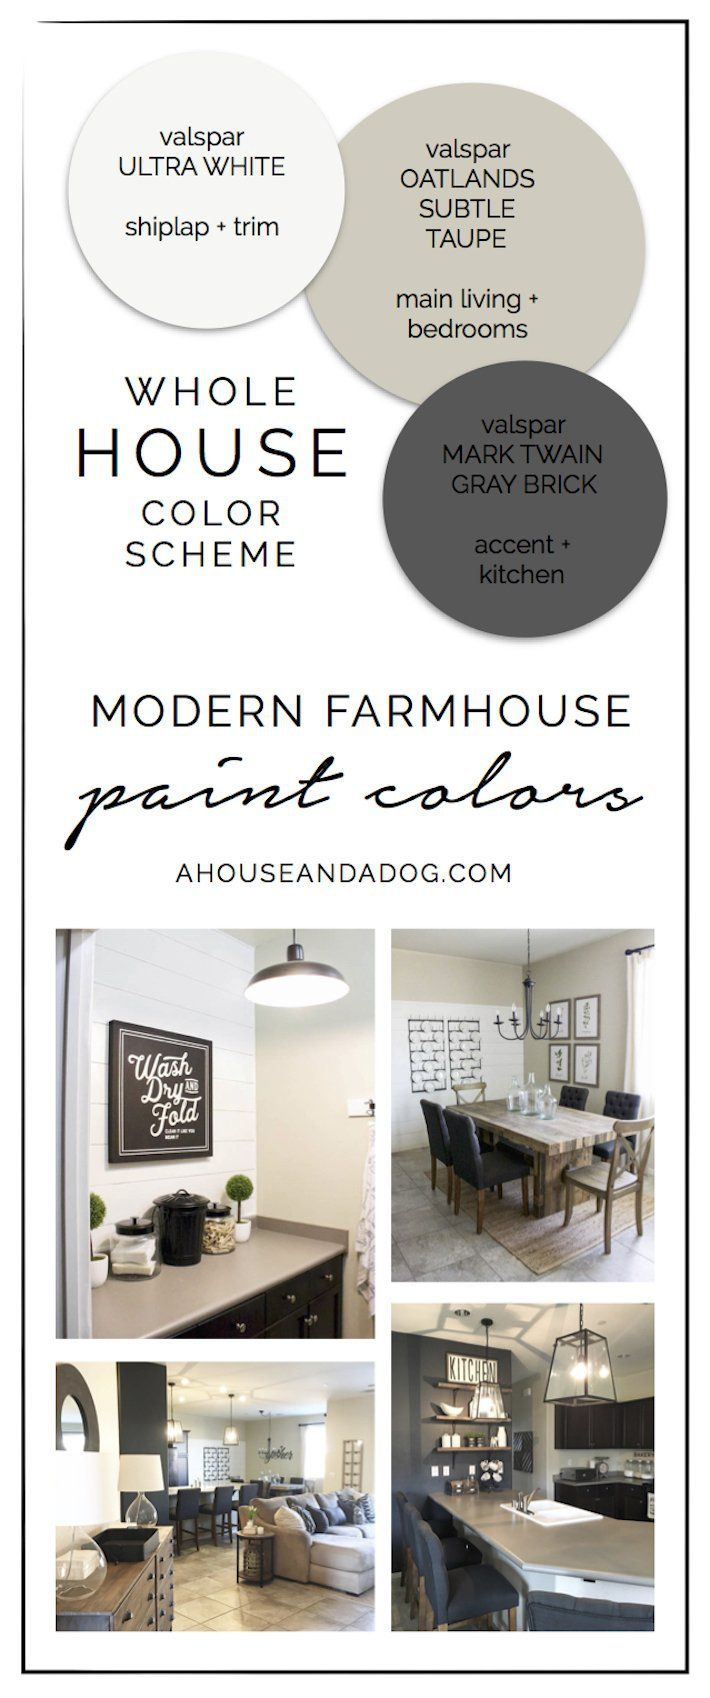 Whole house color scheme modern farmhouse paint colors - Whole house interior paint palette ...